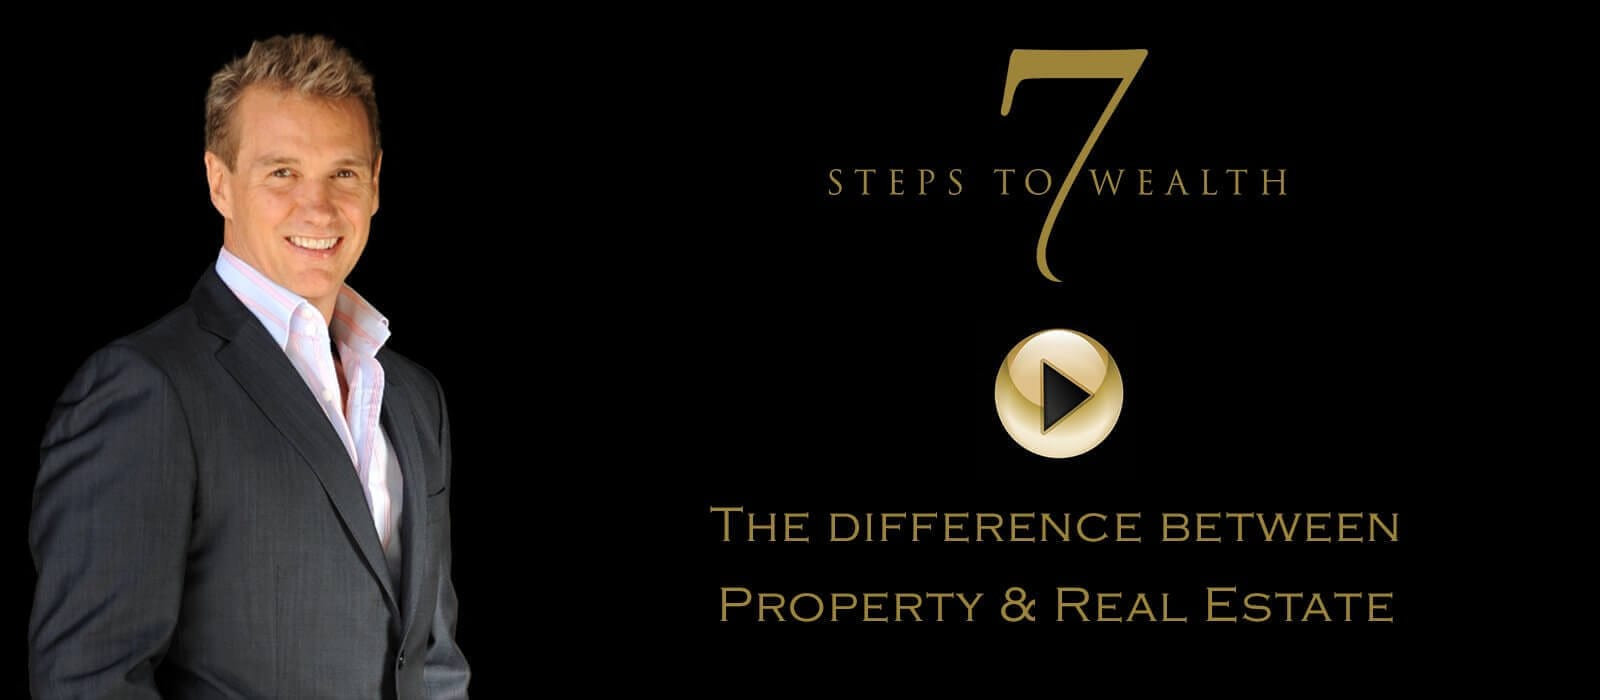 John Fitzgerald  and his talks about the difference between property and real estate